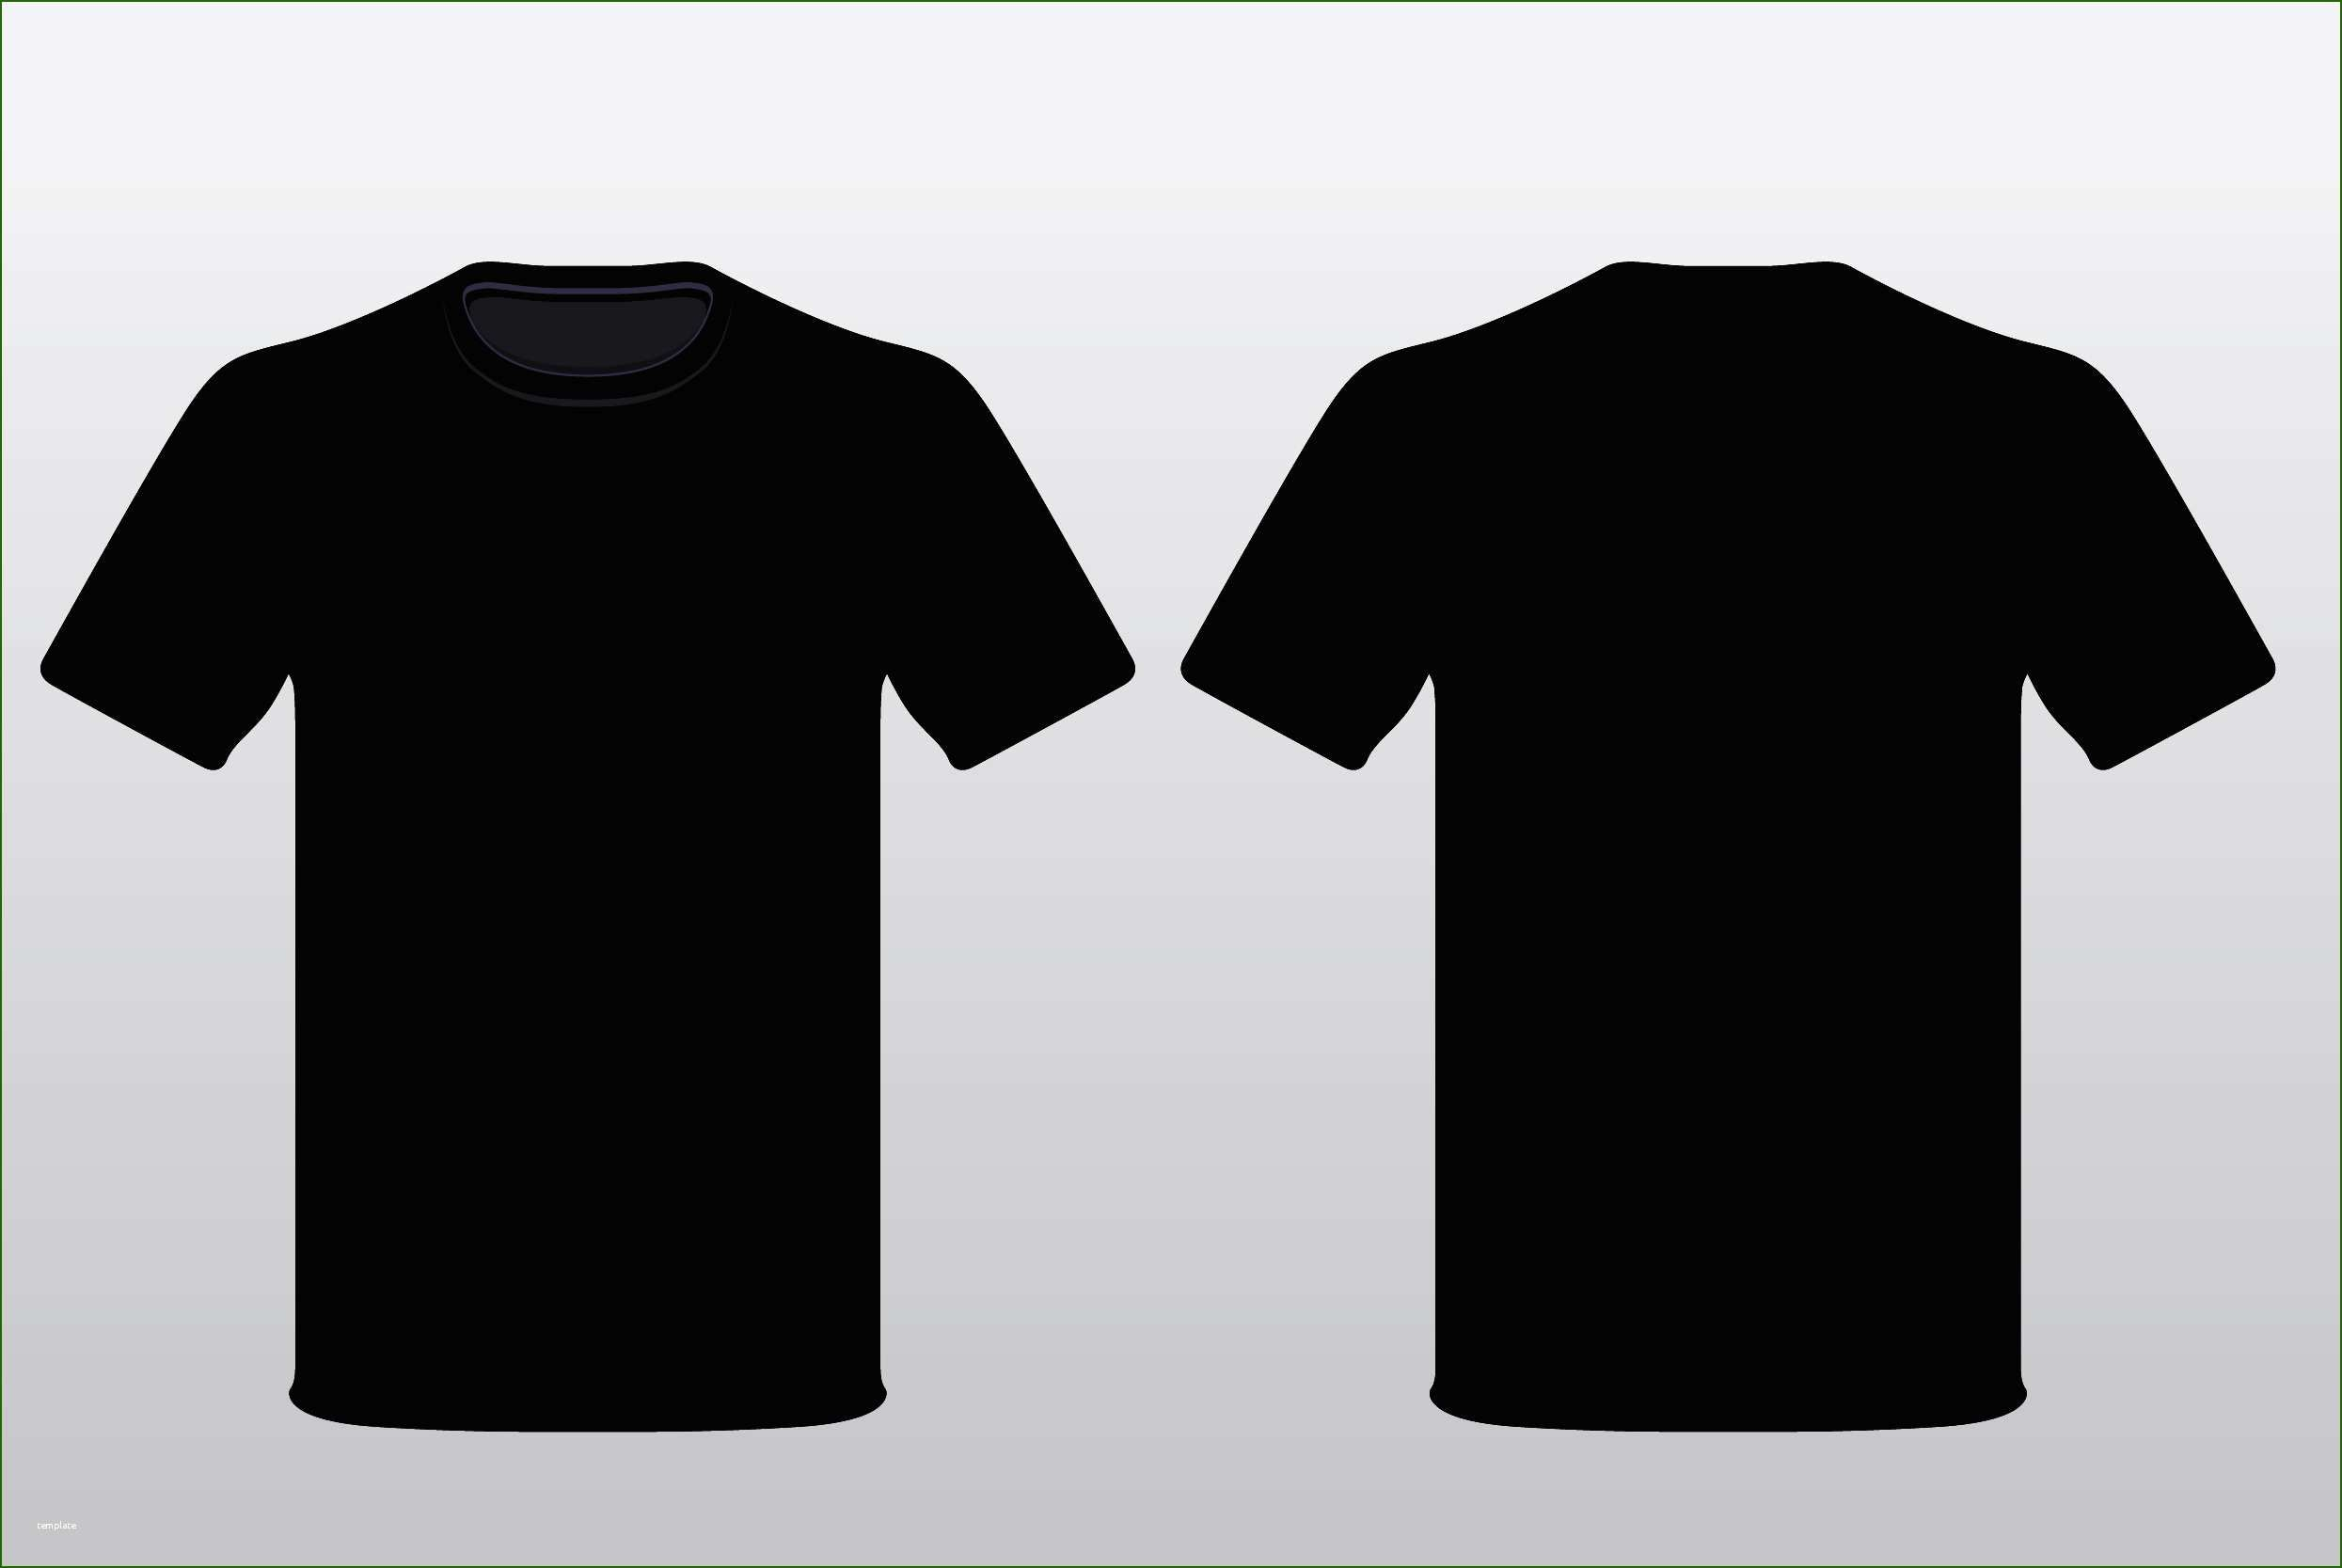 Tee Shirt Design Template 16 Perception In 2020 In 2020 Shirt Template Tee Shirt Designs T Shirt Design Template